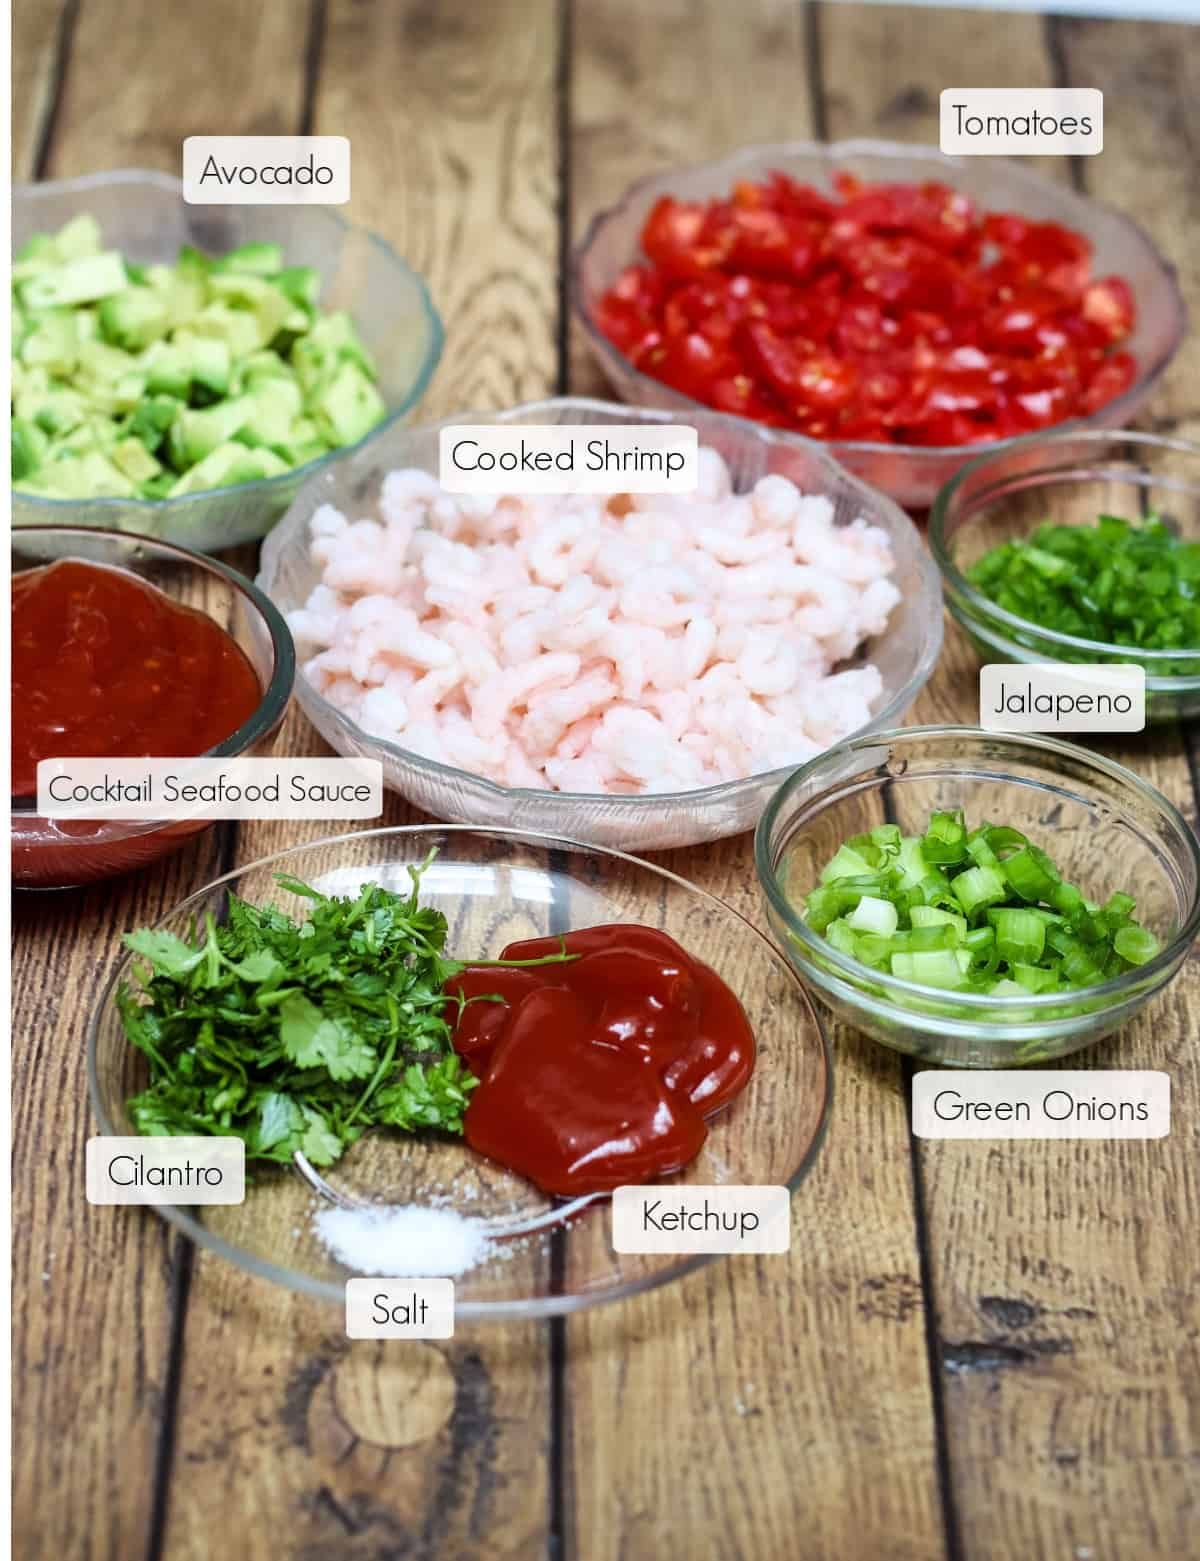 Ingredients in bowls for Shrimp Avocado Salsa with each labeled.